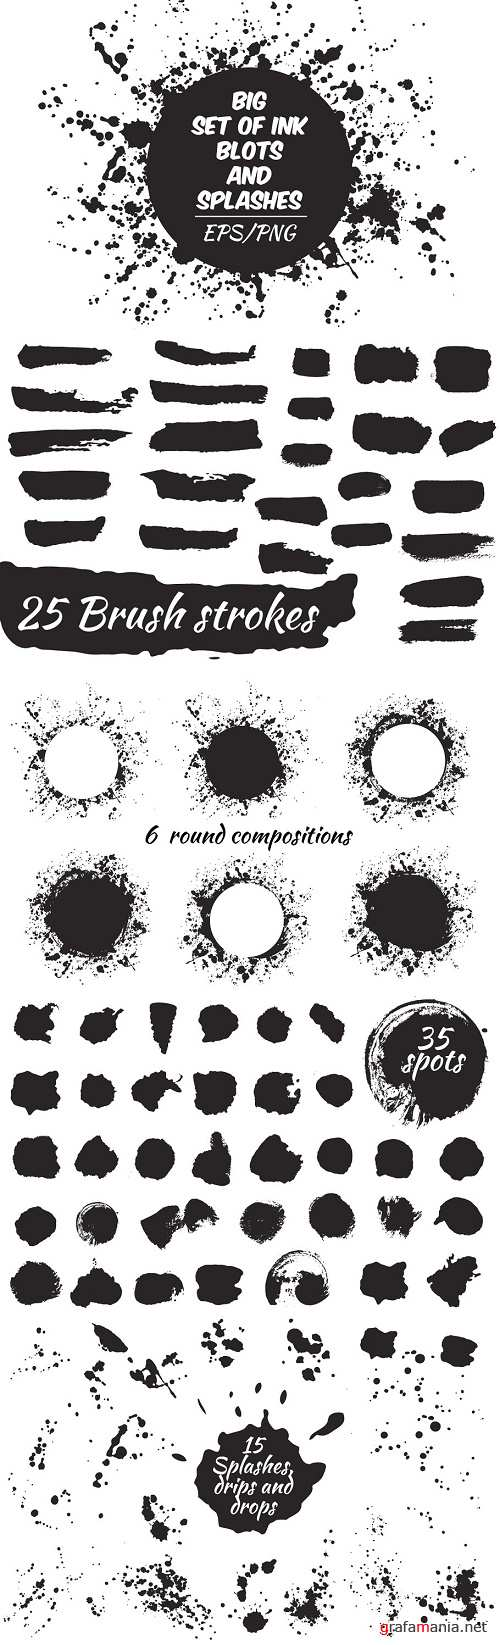 Ink blots and splachers set - 1329141